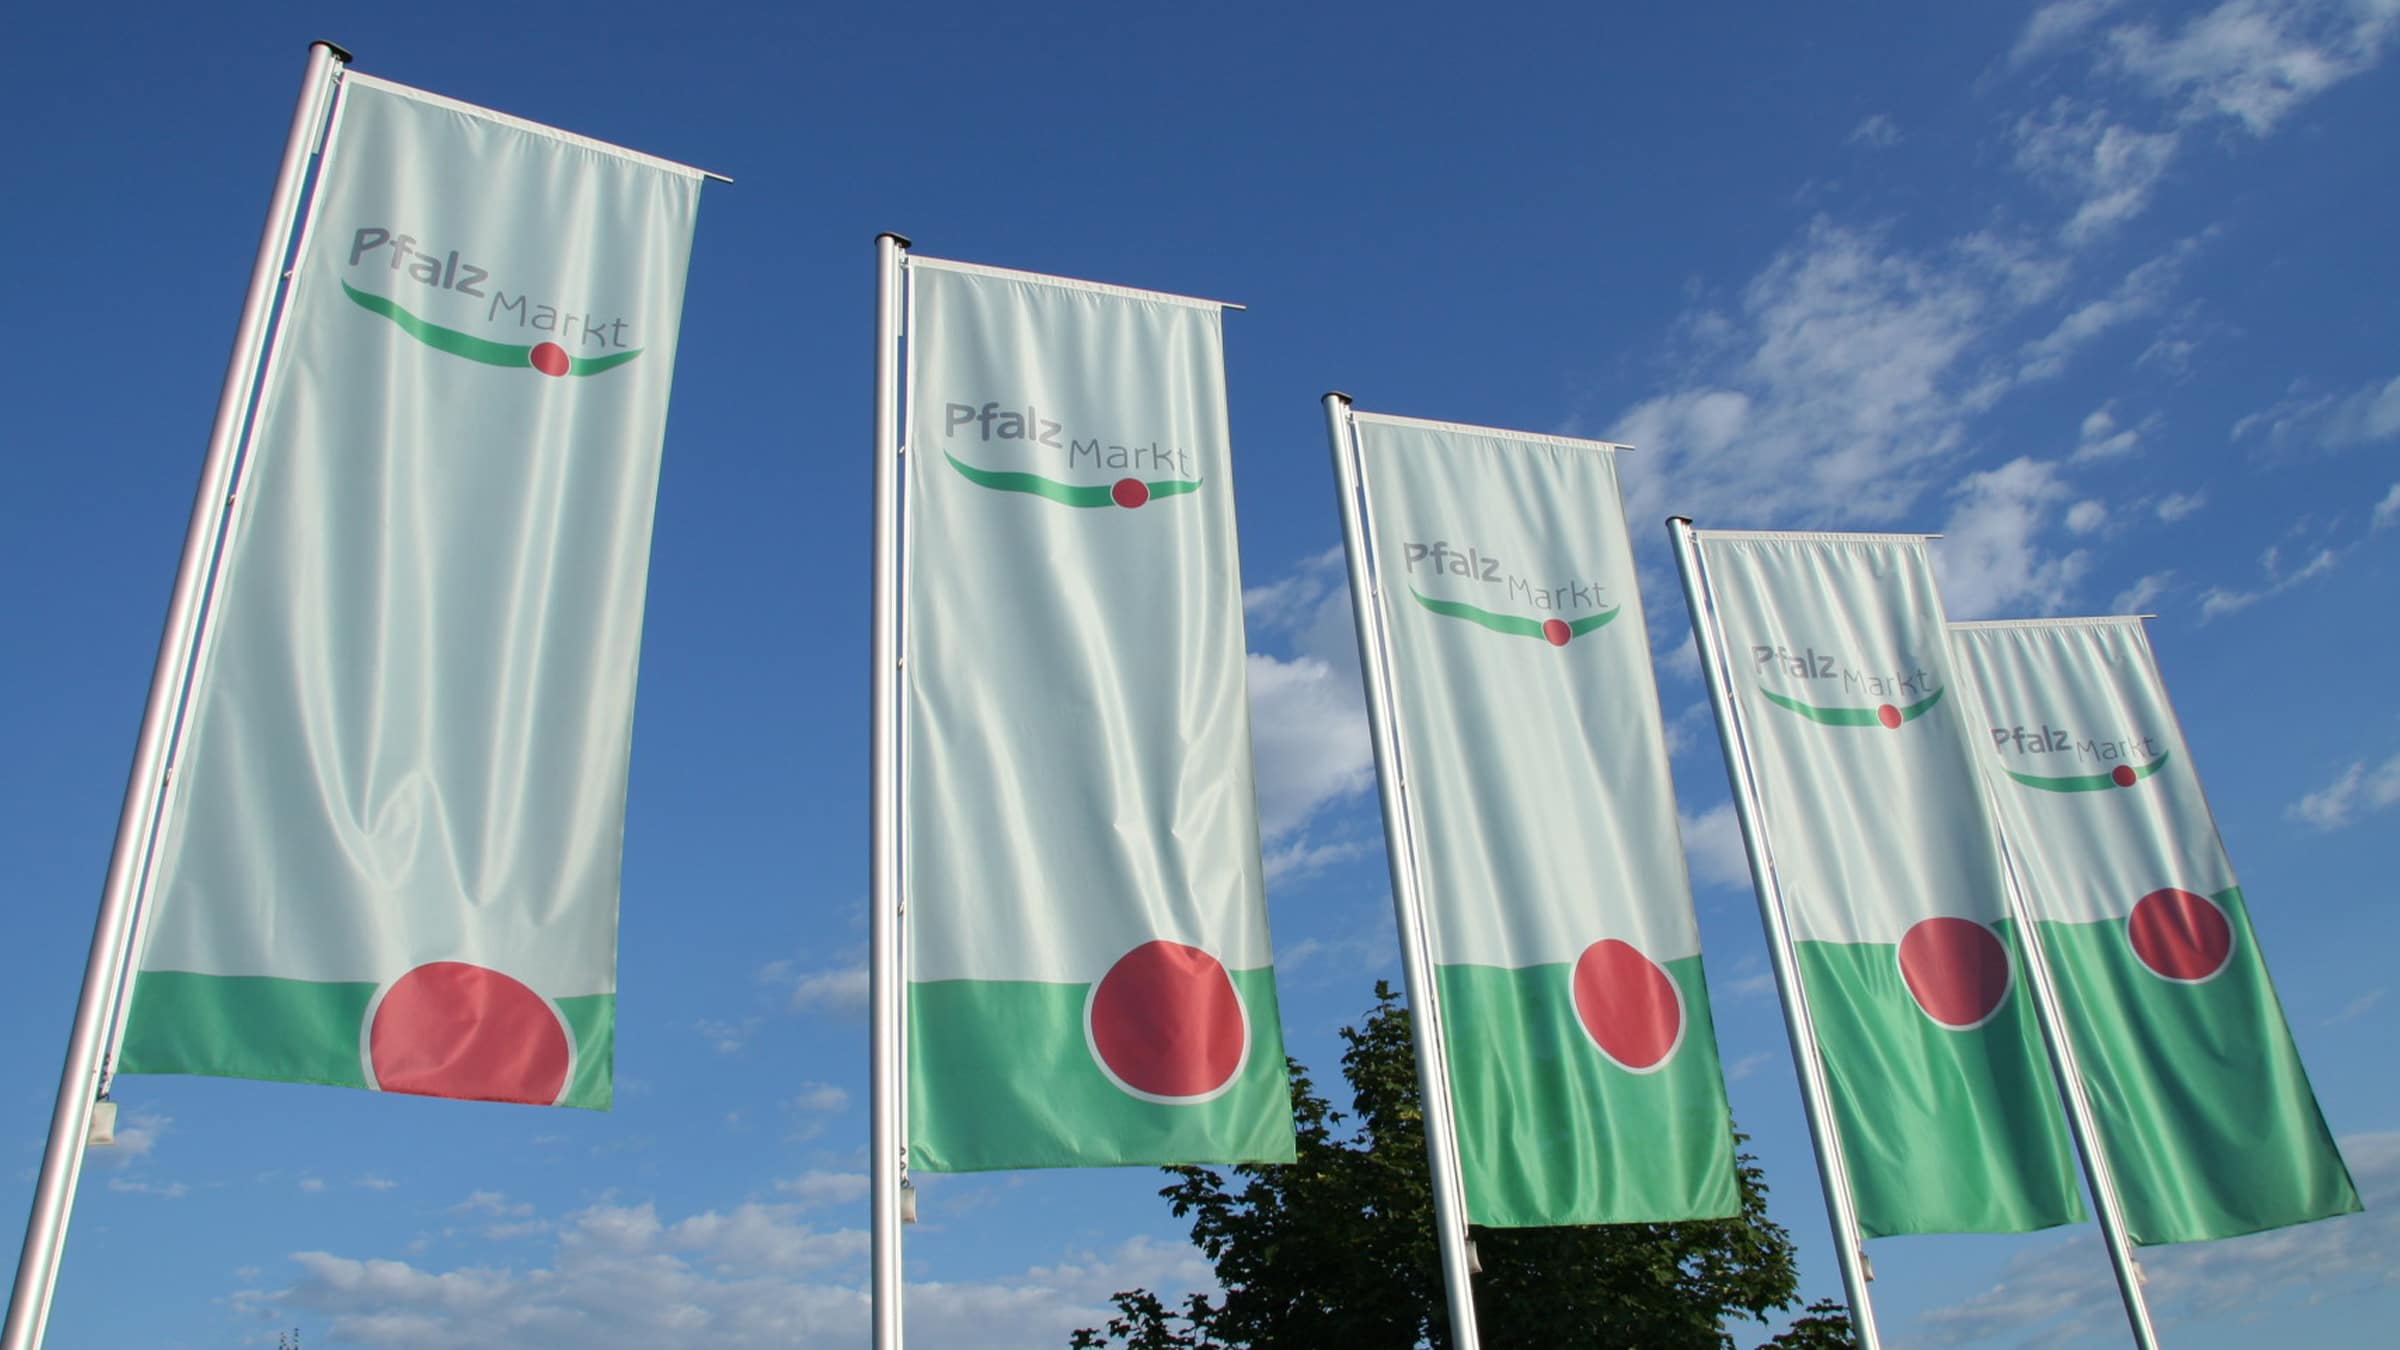 Pfalzmarkt Flags Entrance